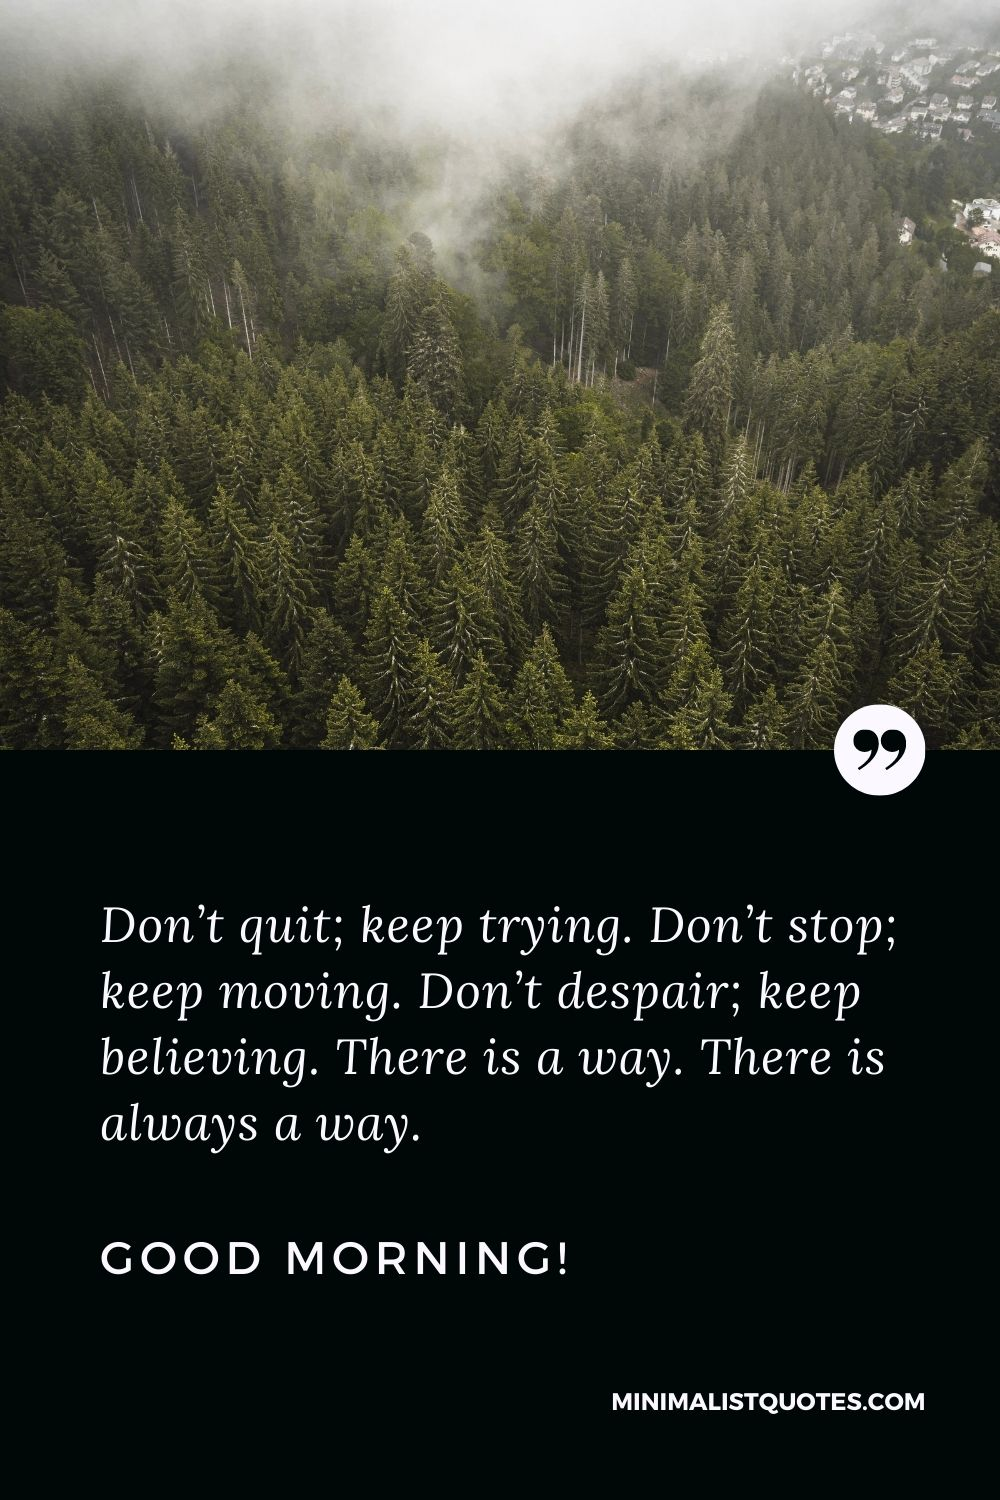 Motivational Good morning Message: Don't quit; keep trying. Don't stop; keep moving. Don't despair; keep believing. There is a way. There is always a way. Good Morning!